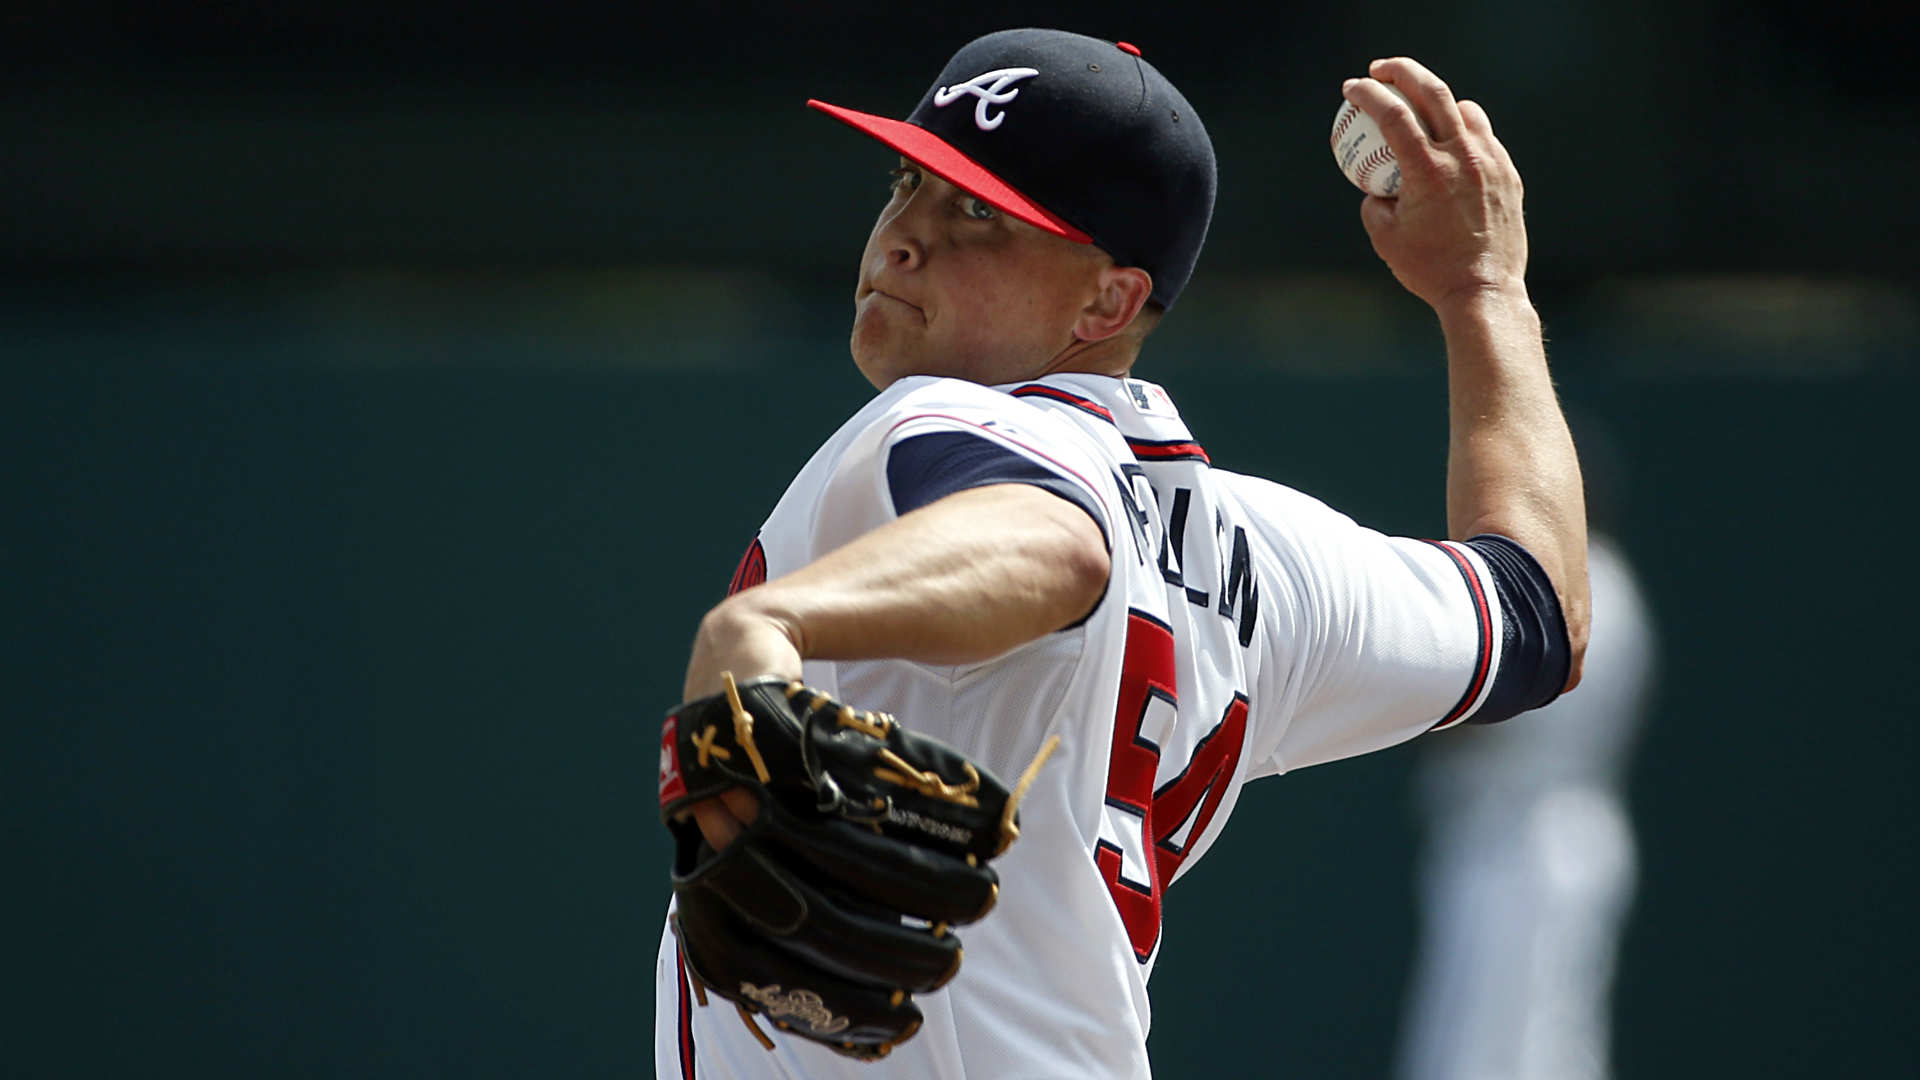 How far does injury knock Kris Medlen down fantasy baseball drafts?